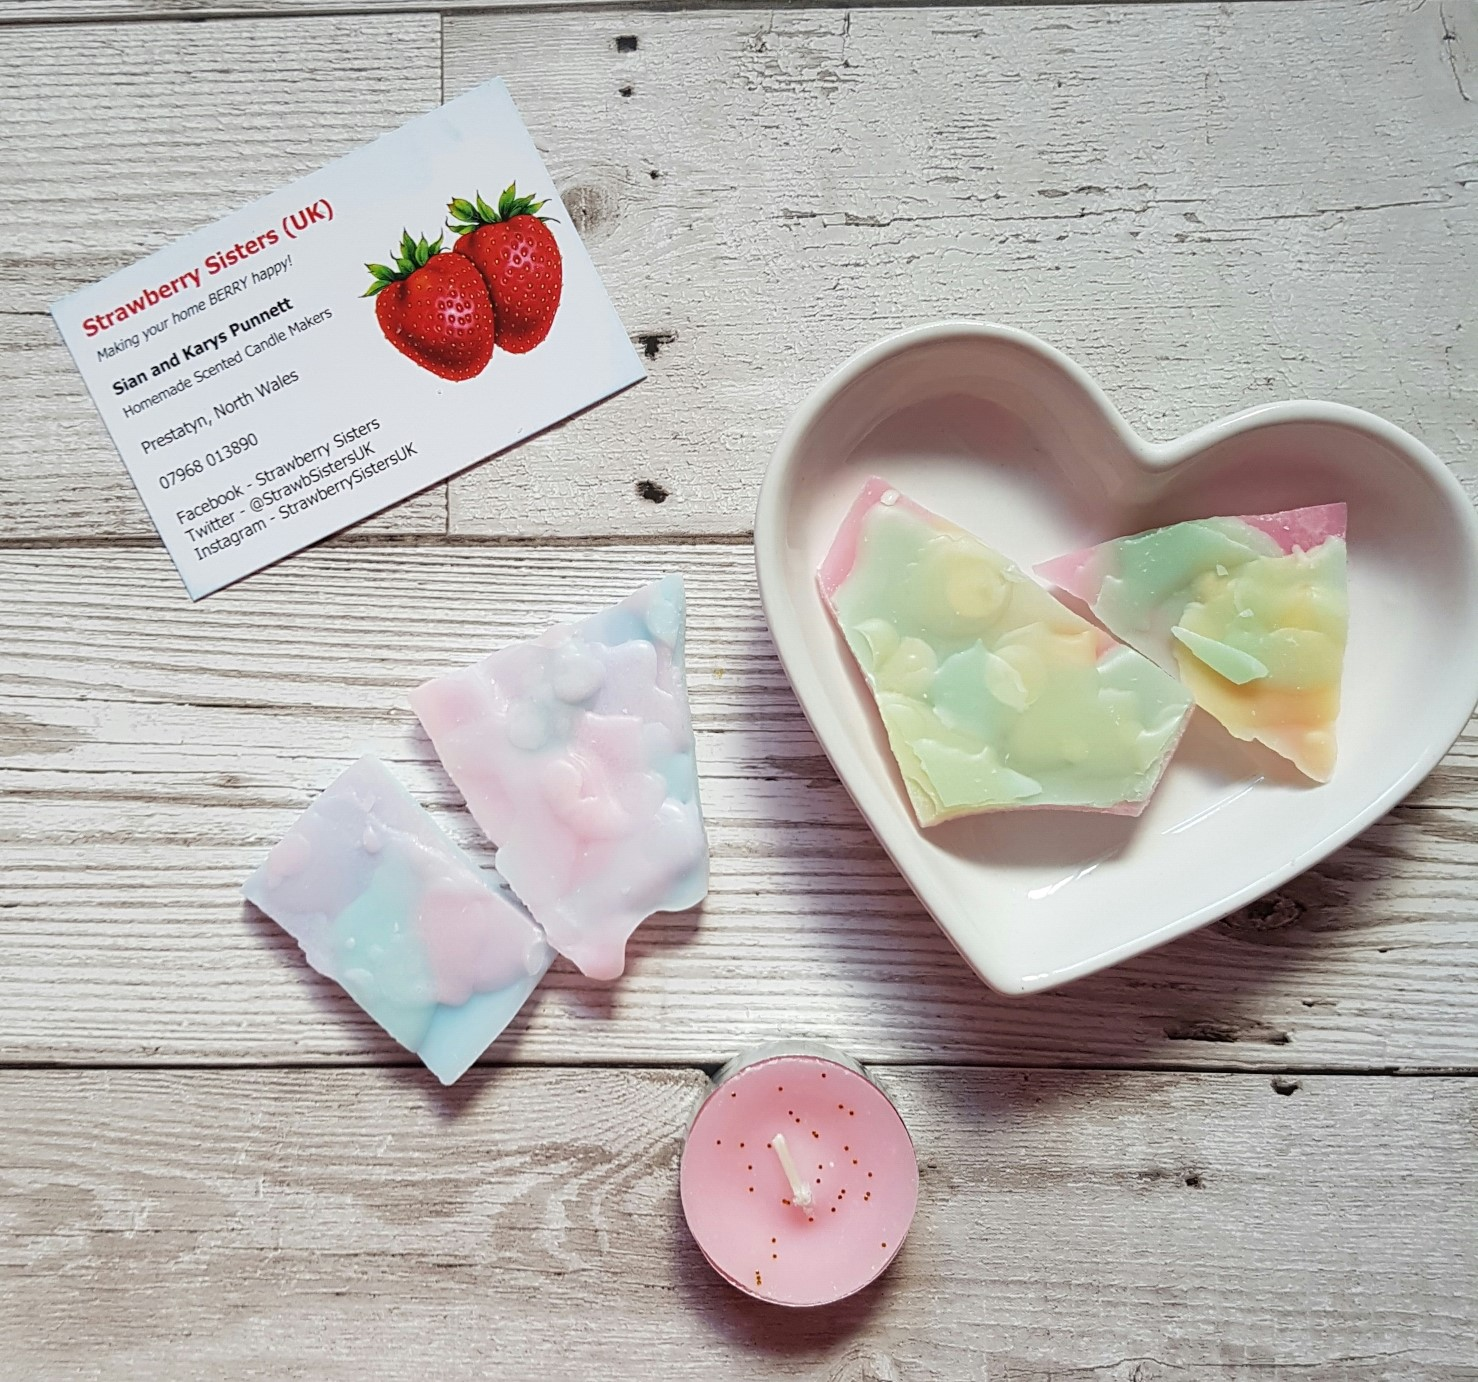 strawberry sisters wax brittle7